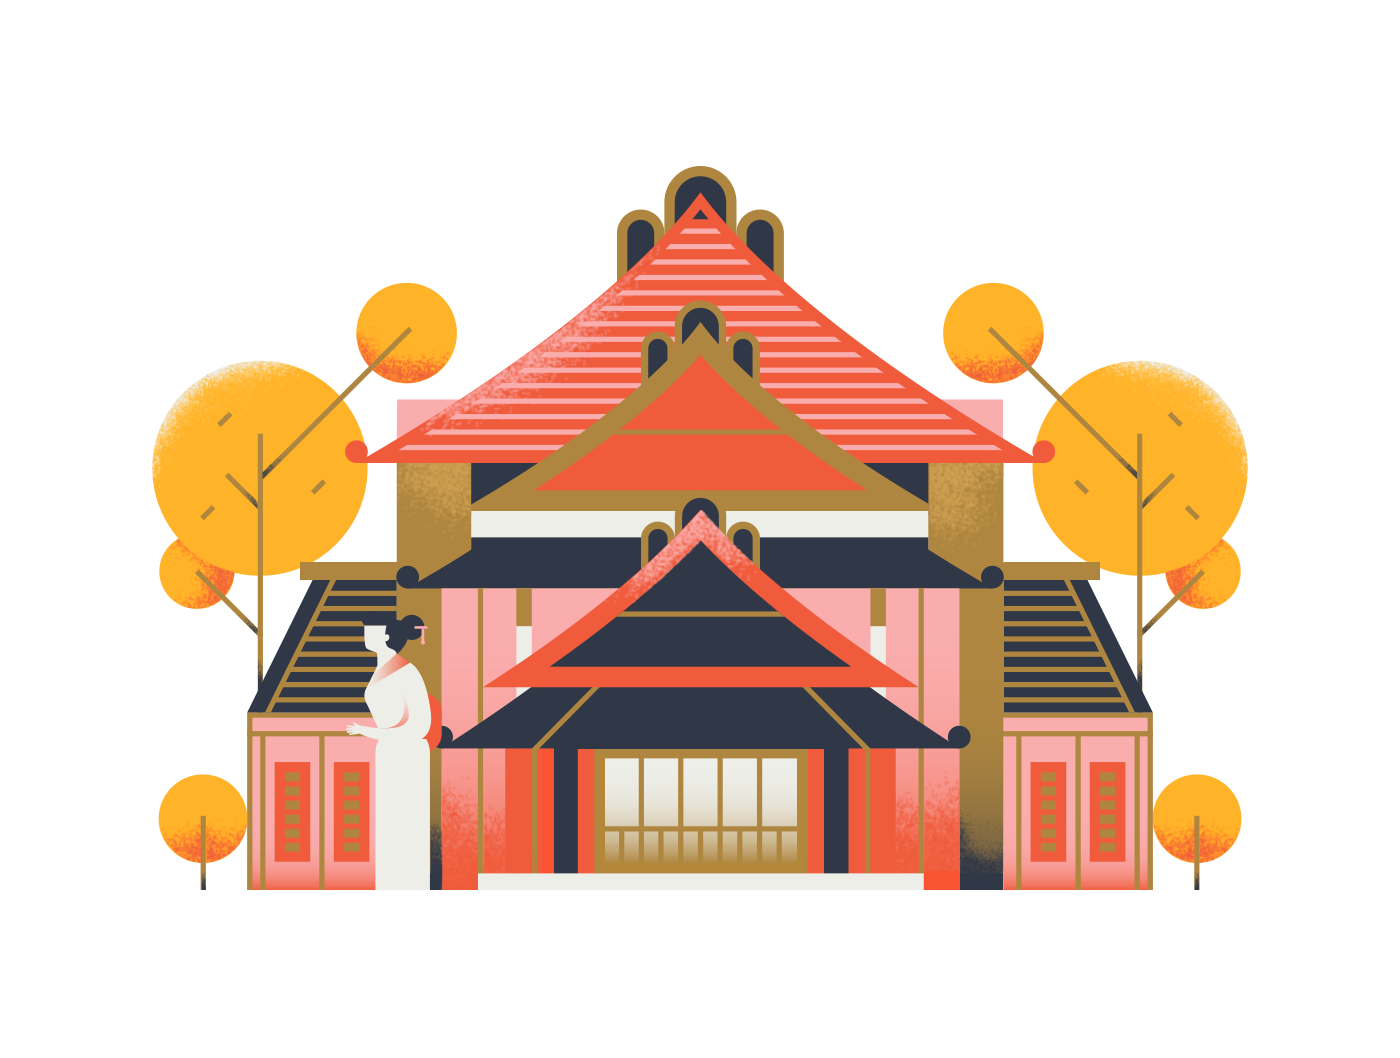 03_airbnb